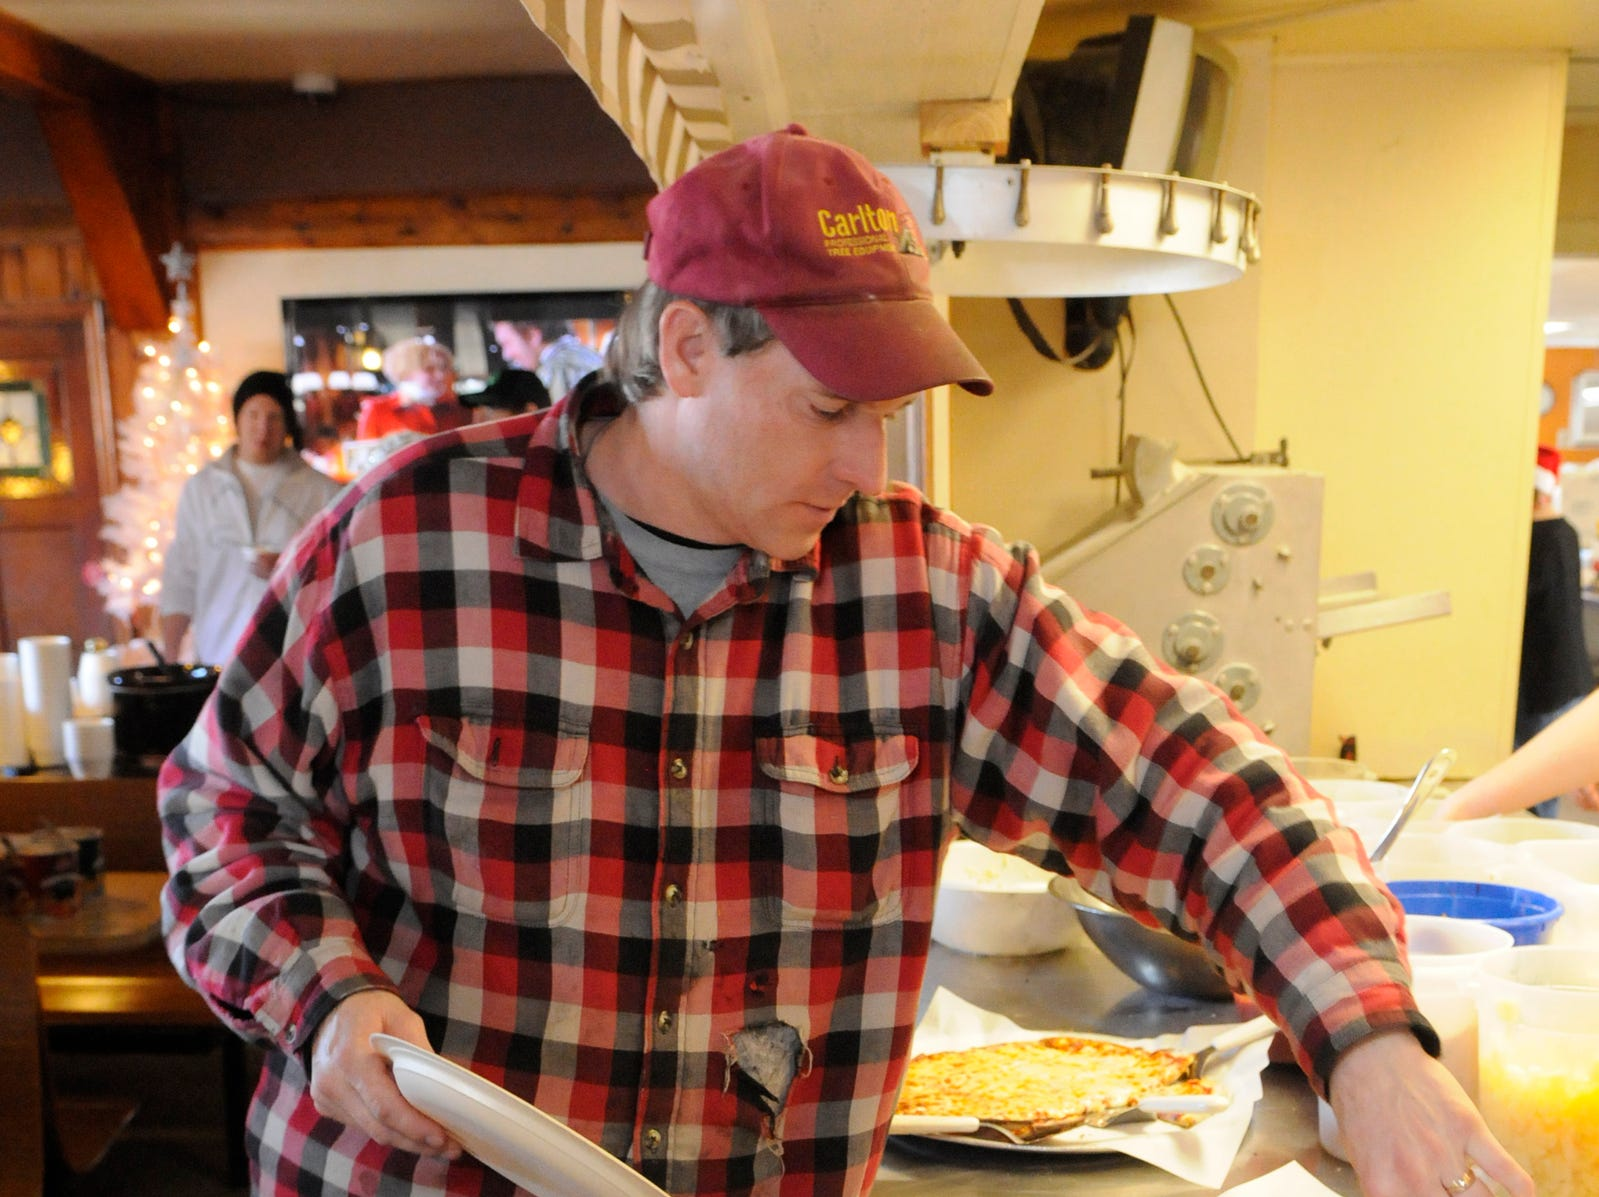 Jeremy Girtz, Freedom, comes back for a second helping of pizza at Charlie's Pizza in Little Falls Tuesday, Dec. 25, 2012. Owner Charlie Peterka opened his restaurant and served free pizza to anyone who did not have holiday plans.